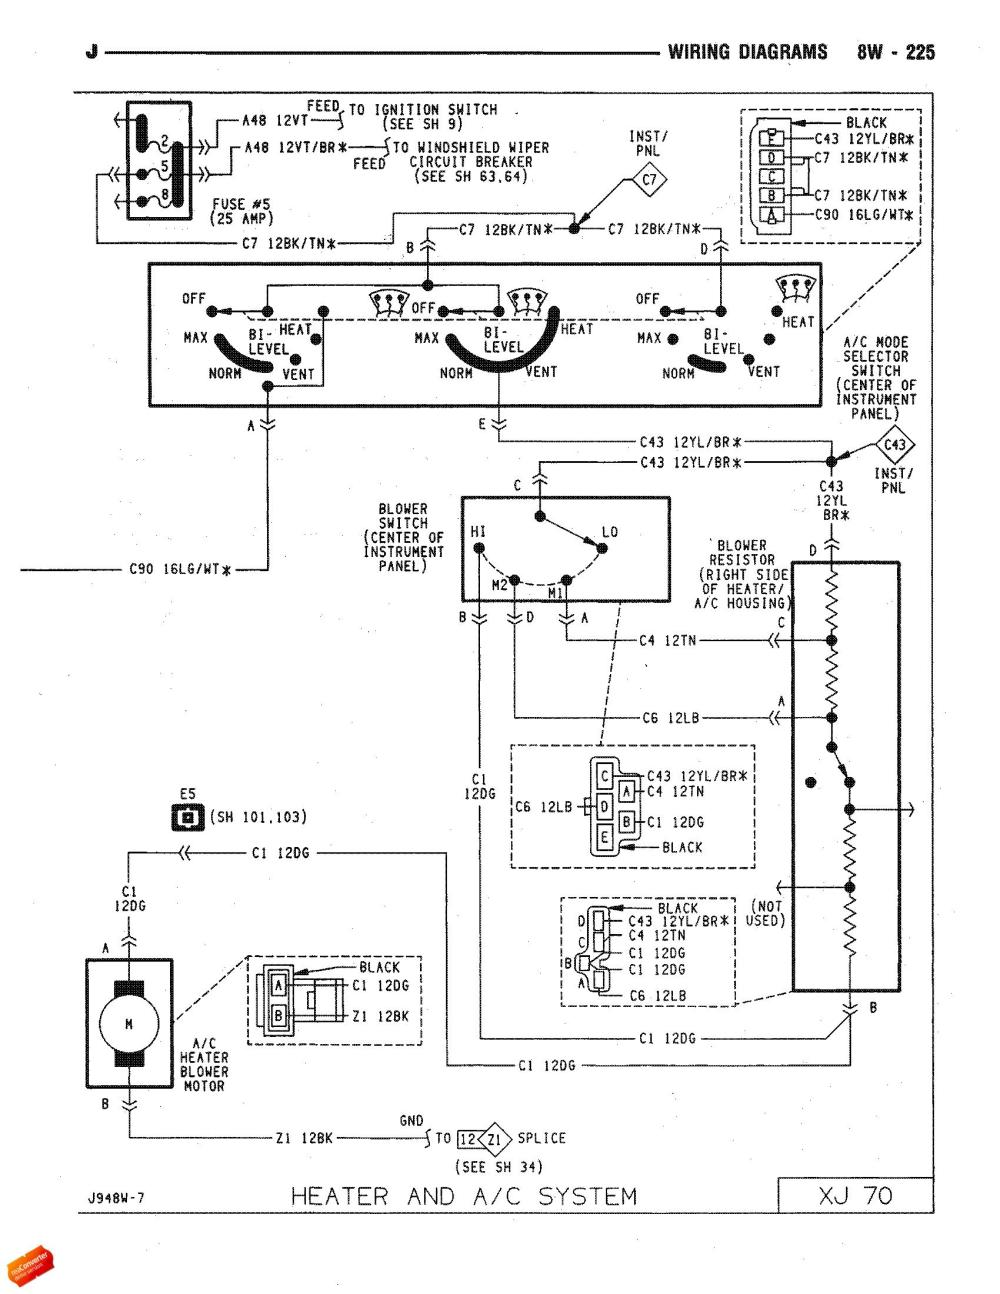 medium resolution of 1996 jeep cherokee heater diagram wiring diagram sample1996 jeep grand cherokee blower motor wiring diagram wiring